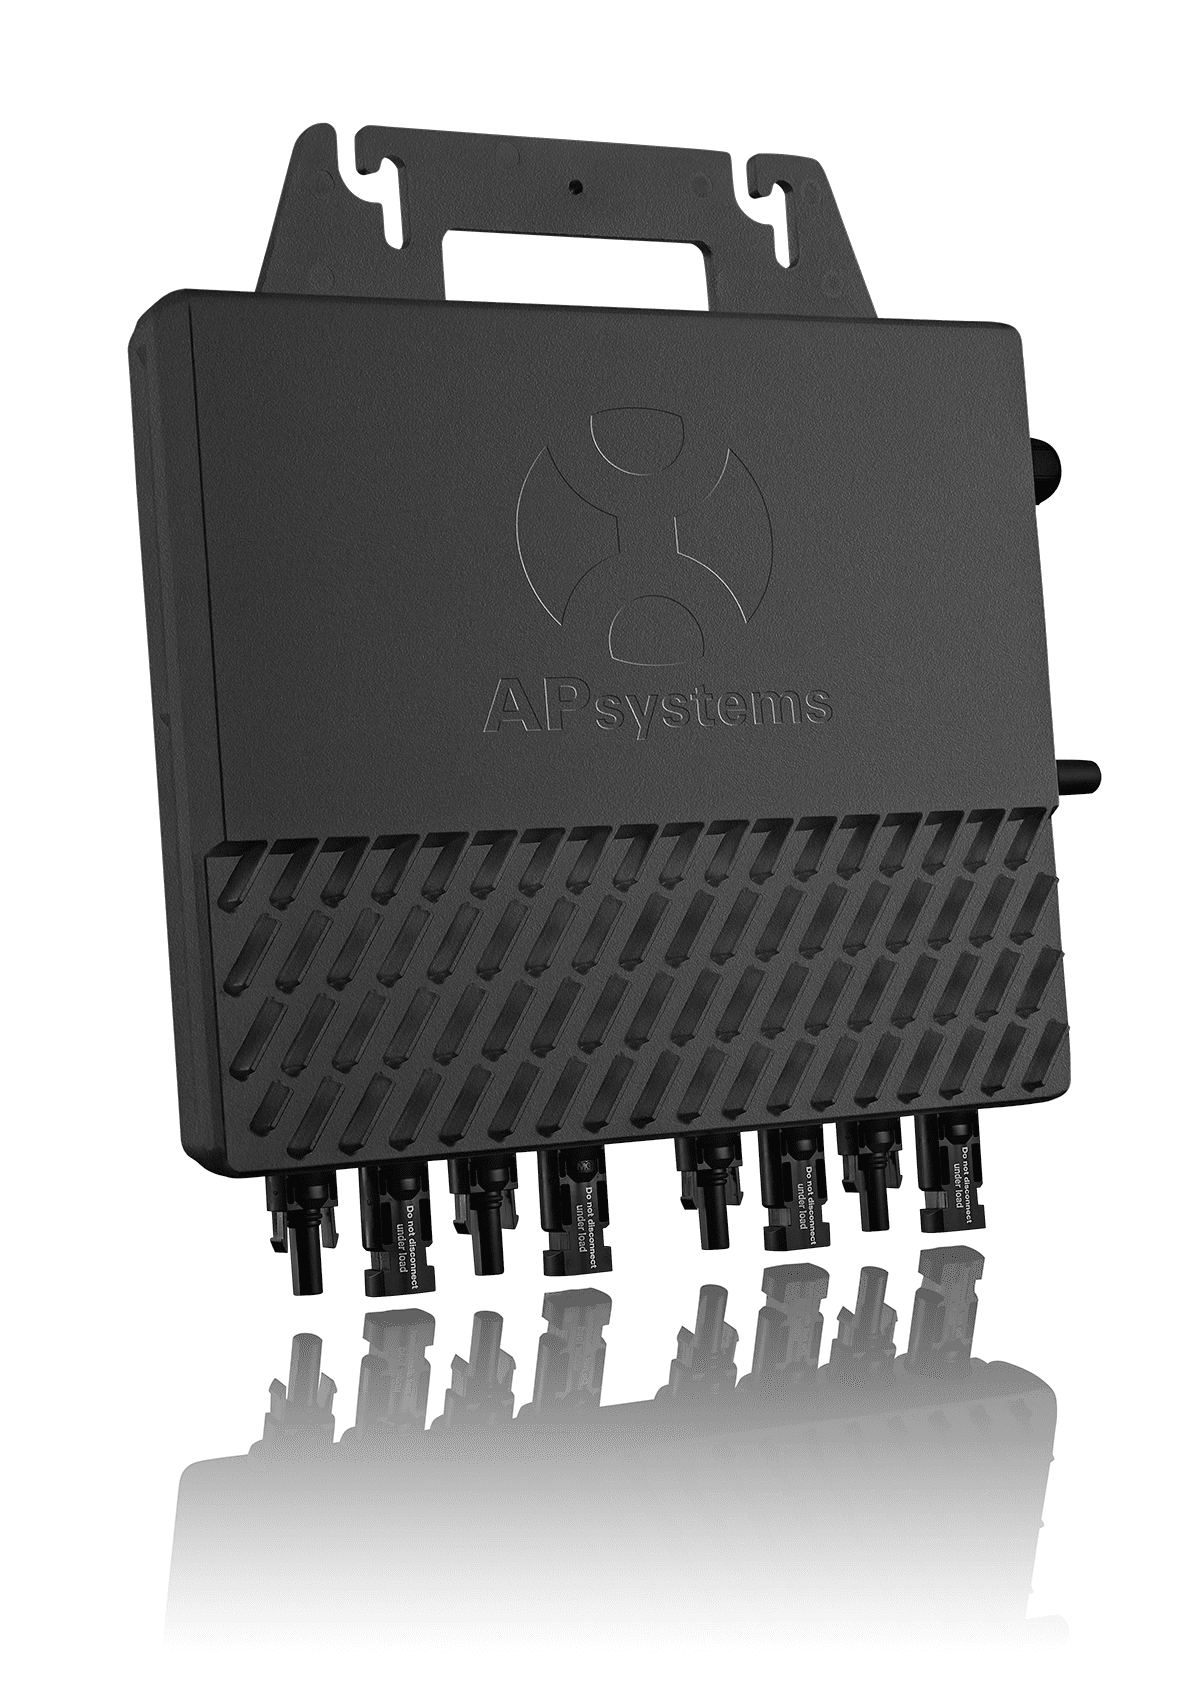 APsystems_QS1_BLACK_trans SM